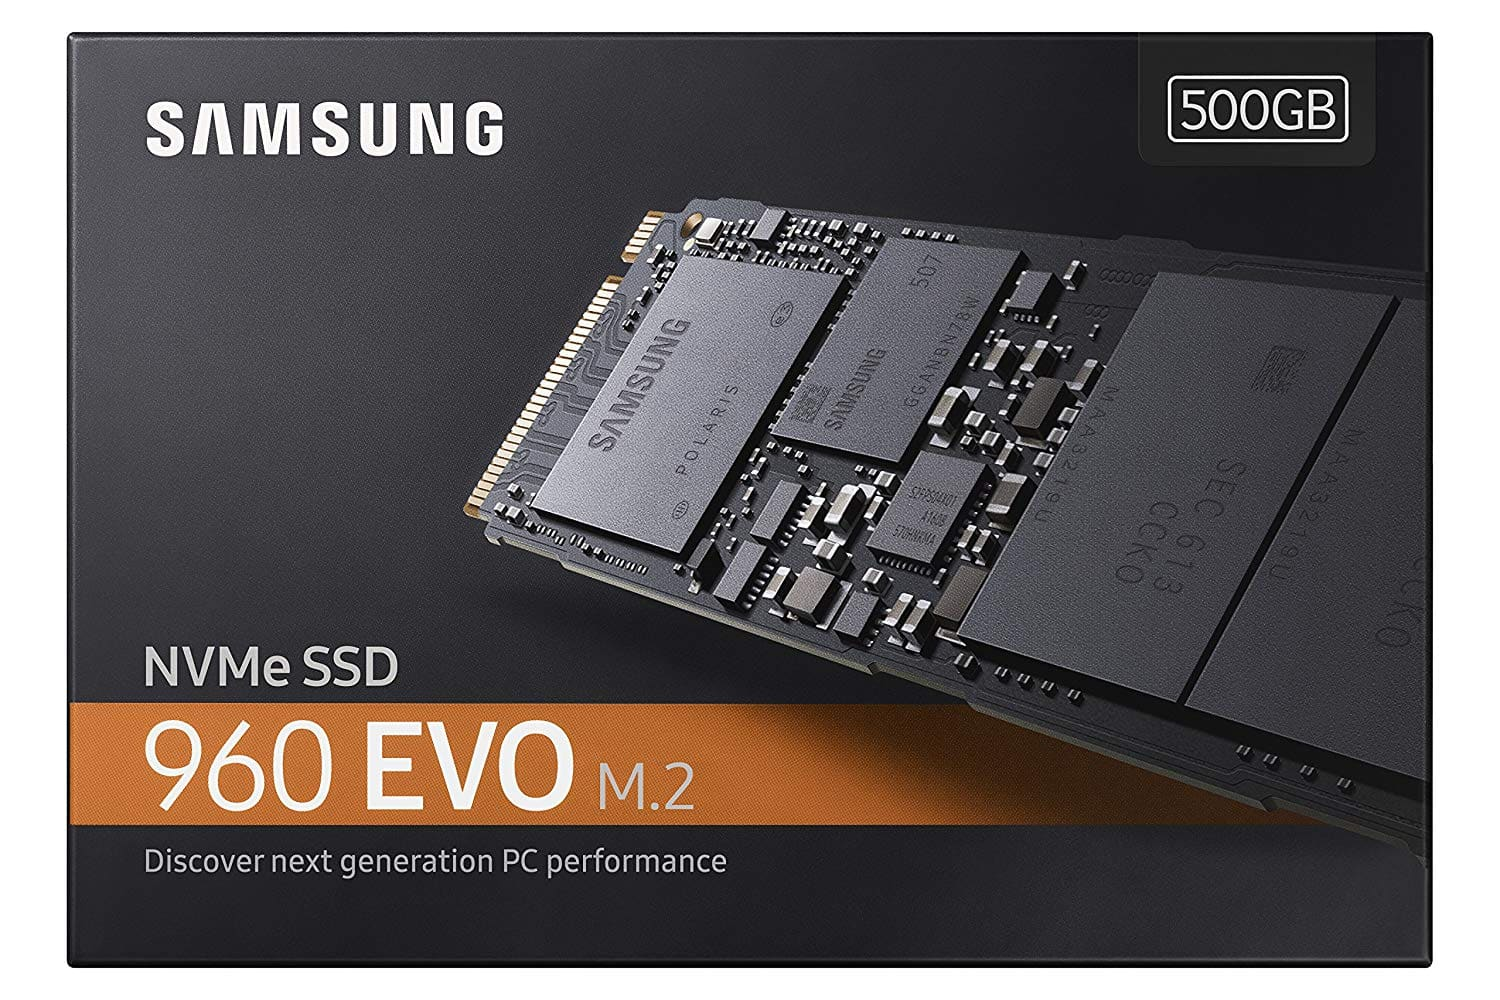 Samsung 960 EVO Series NVMe M.2 Internal SSD: 1TB $329.99 or 500GB $159.99 + Free Shipping for Amazon Prime Members